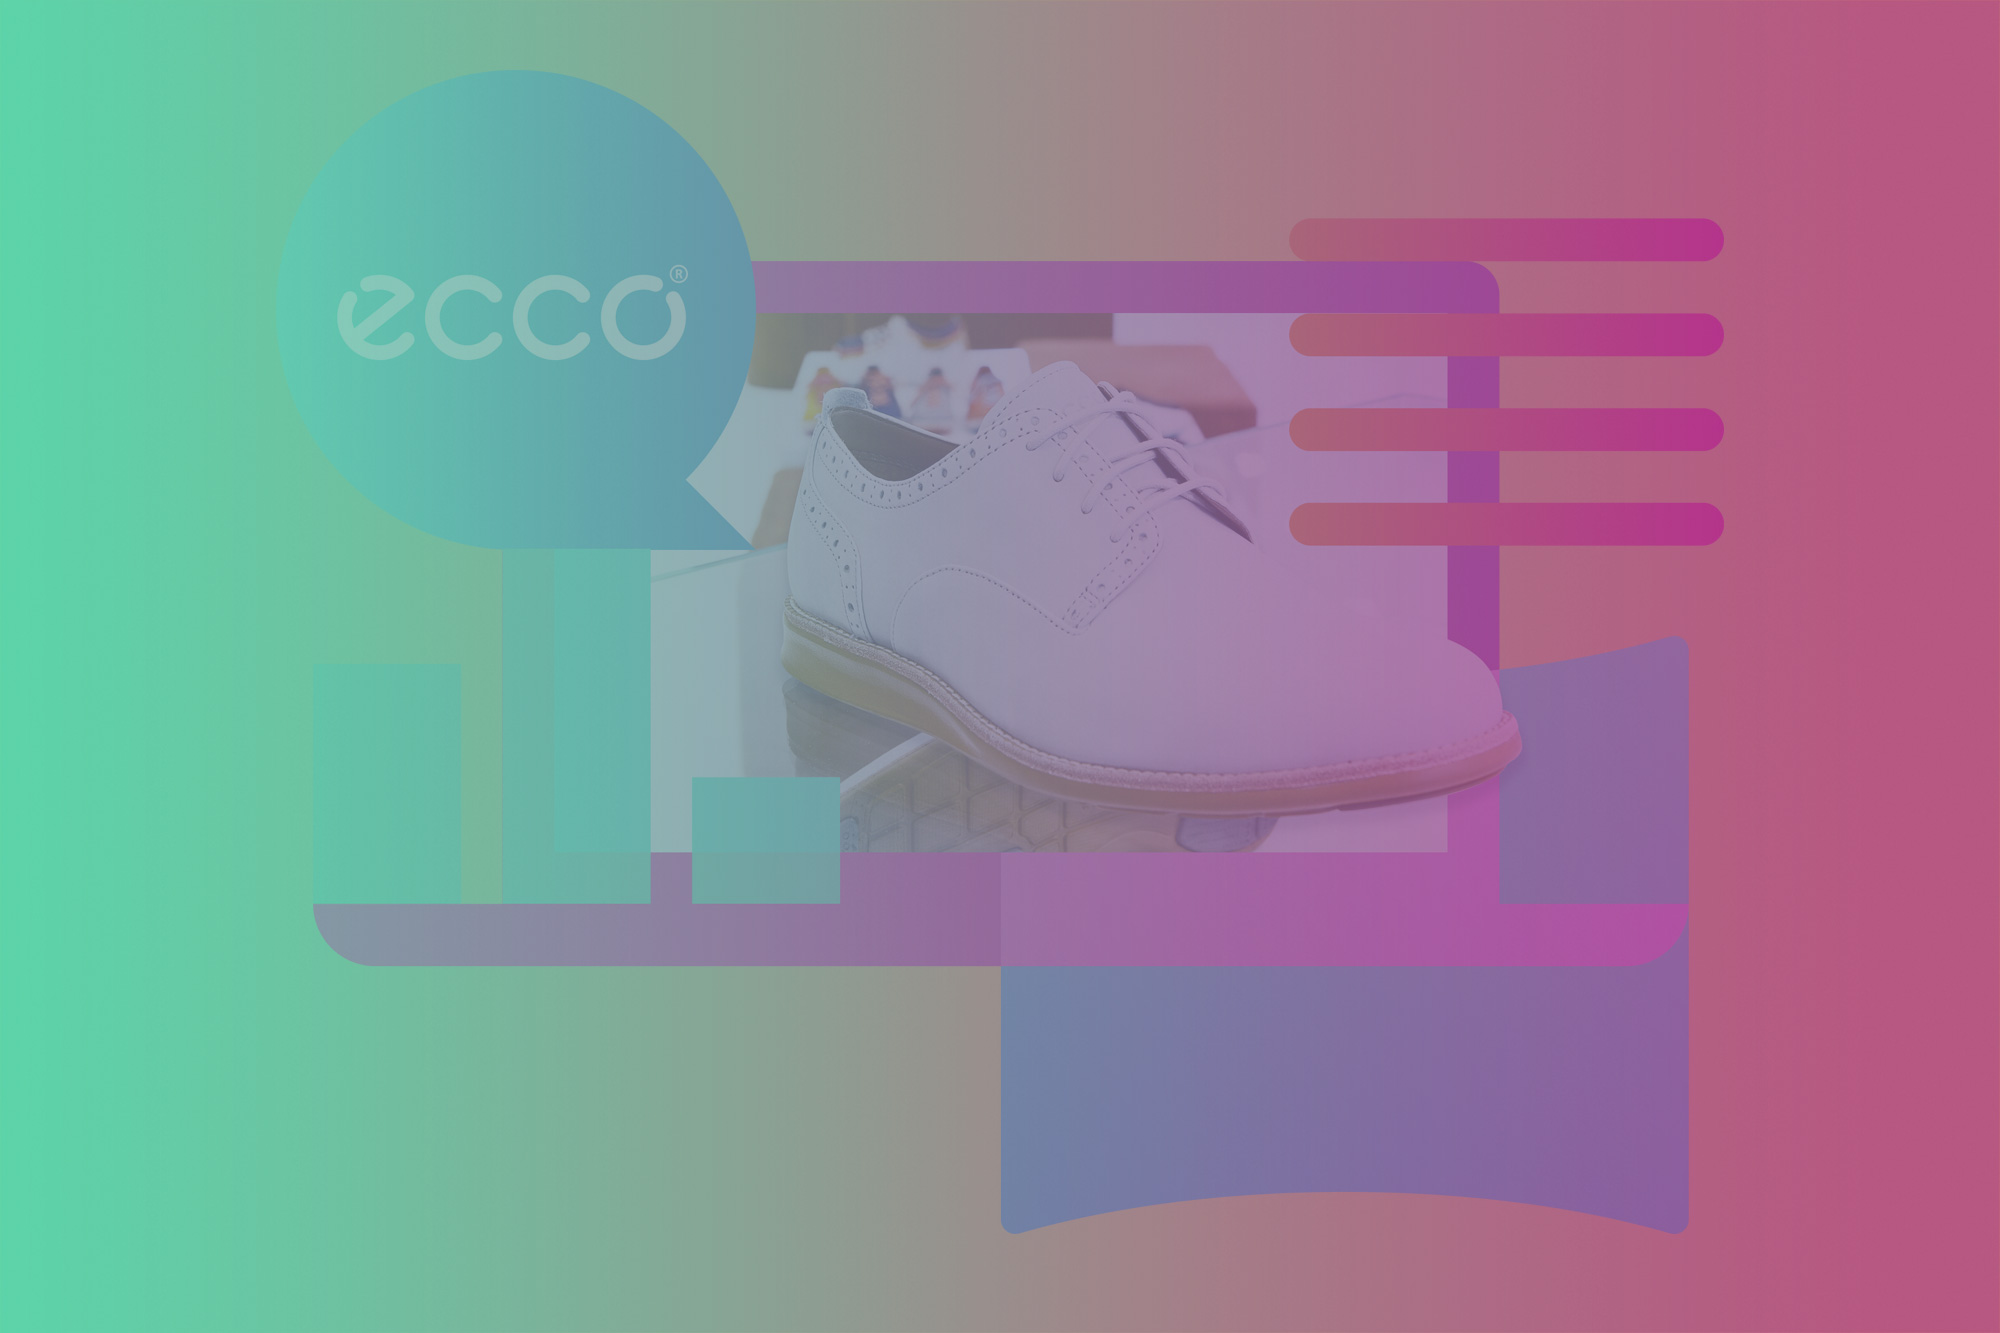 Premium Shoe Brand ECCO Selects IZEAx as its Influencer Marketing Platform